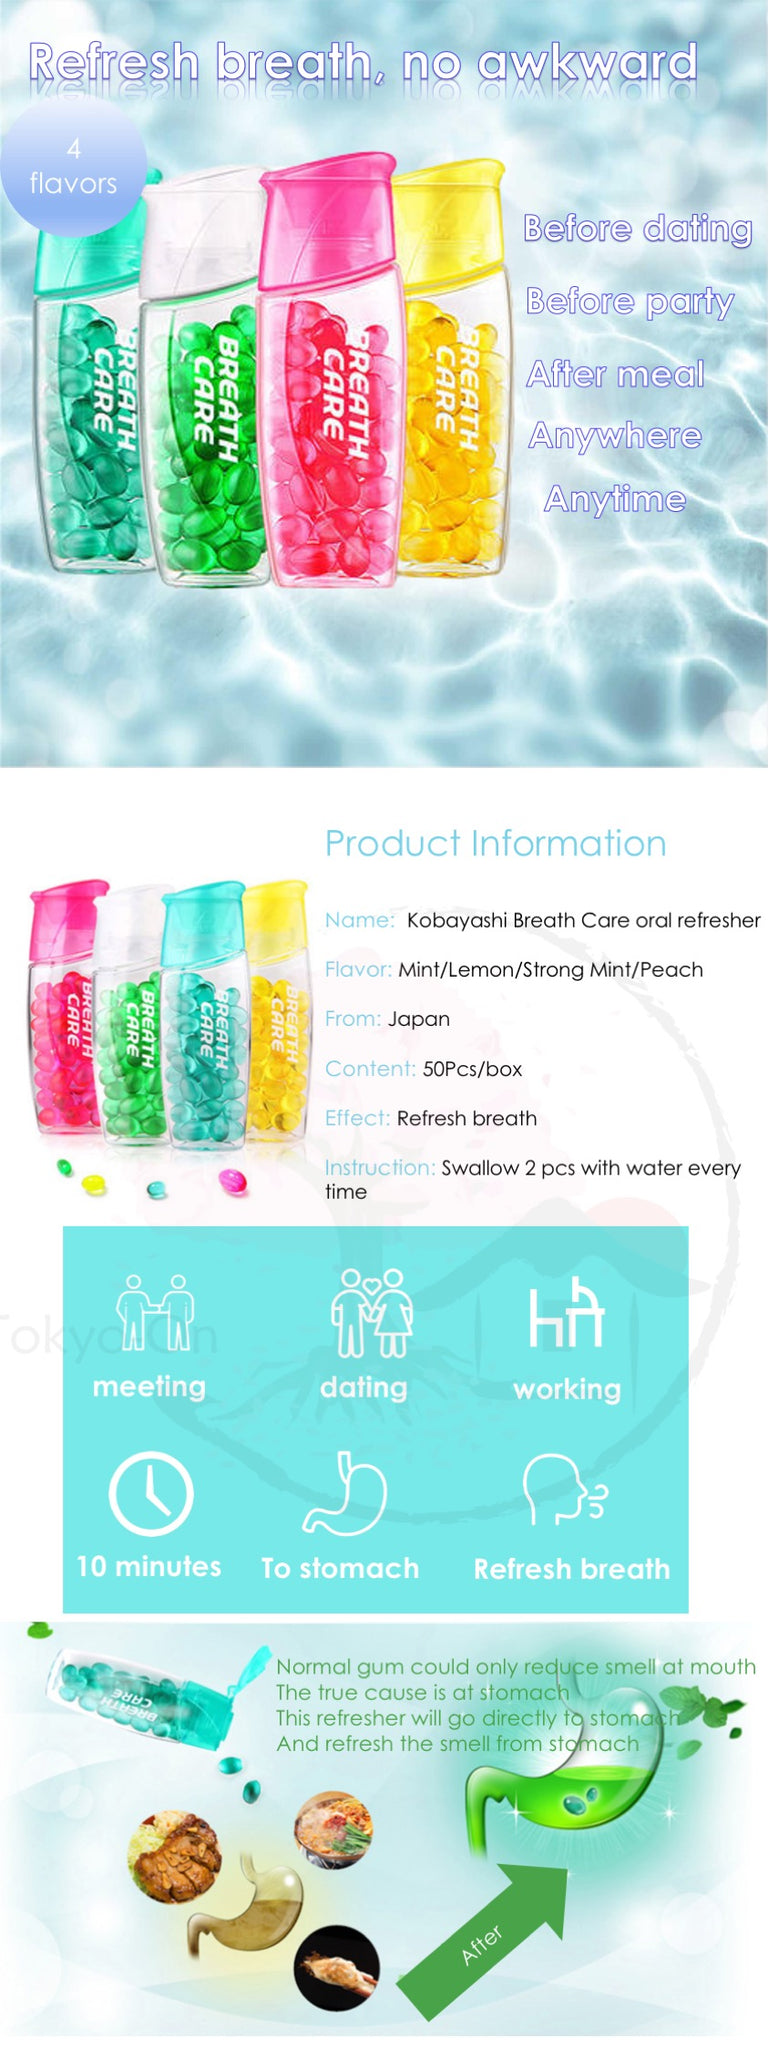 Tokyo-On Kobayashi Breath Care Mint Oral Refresher 50Pcs